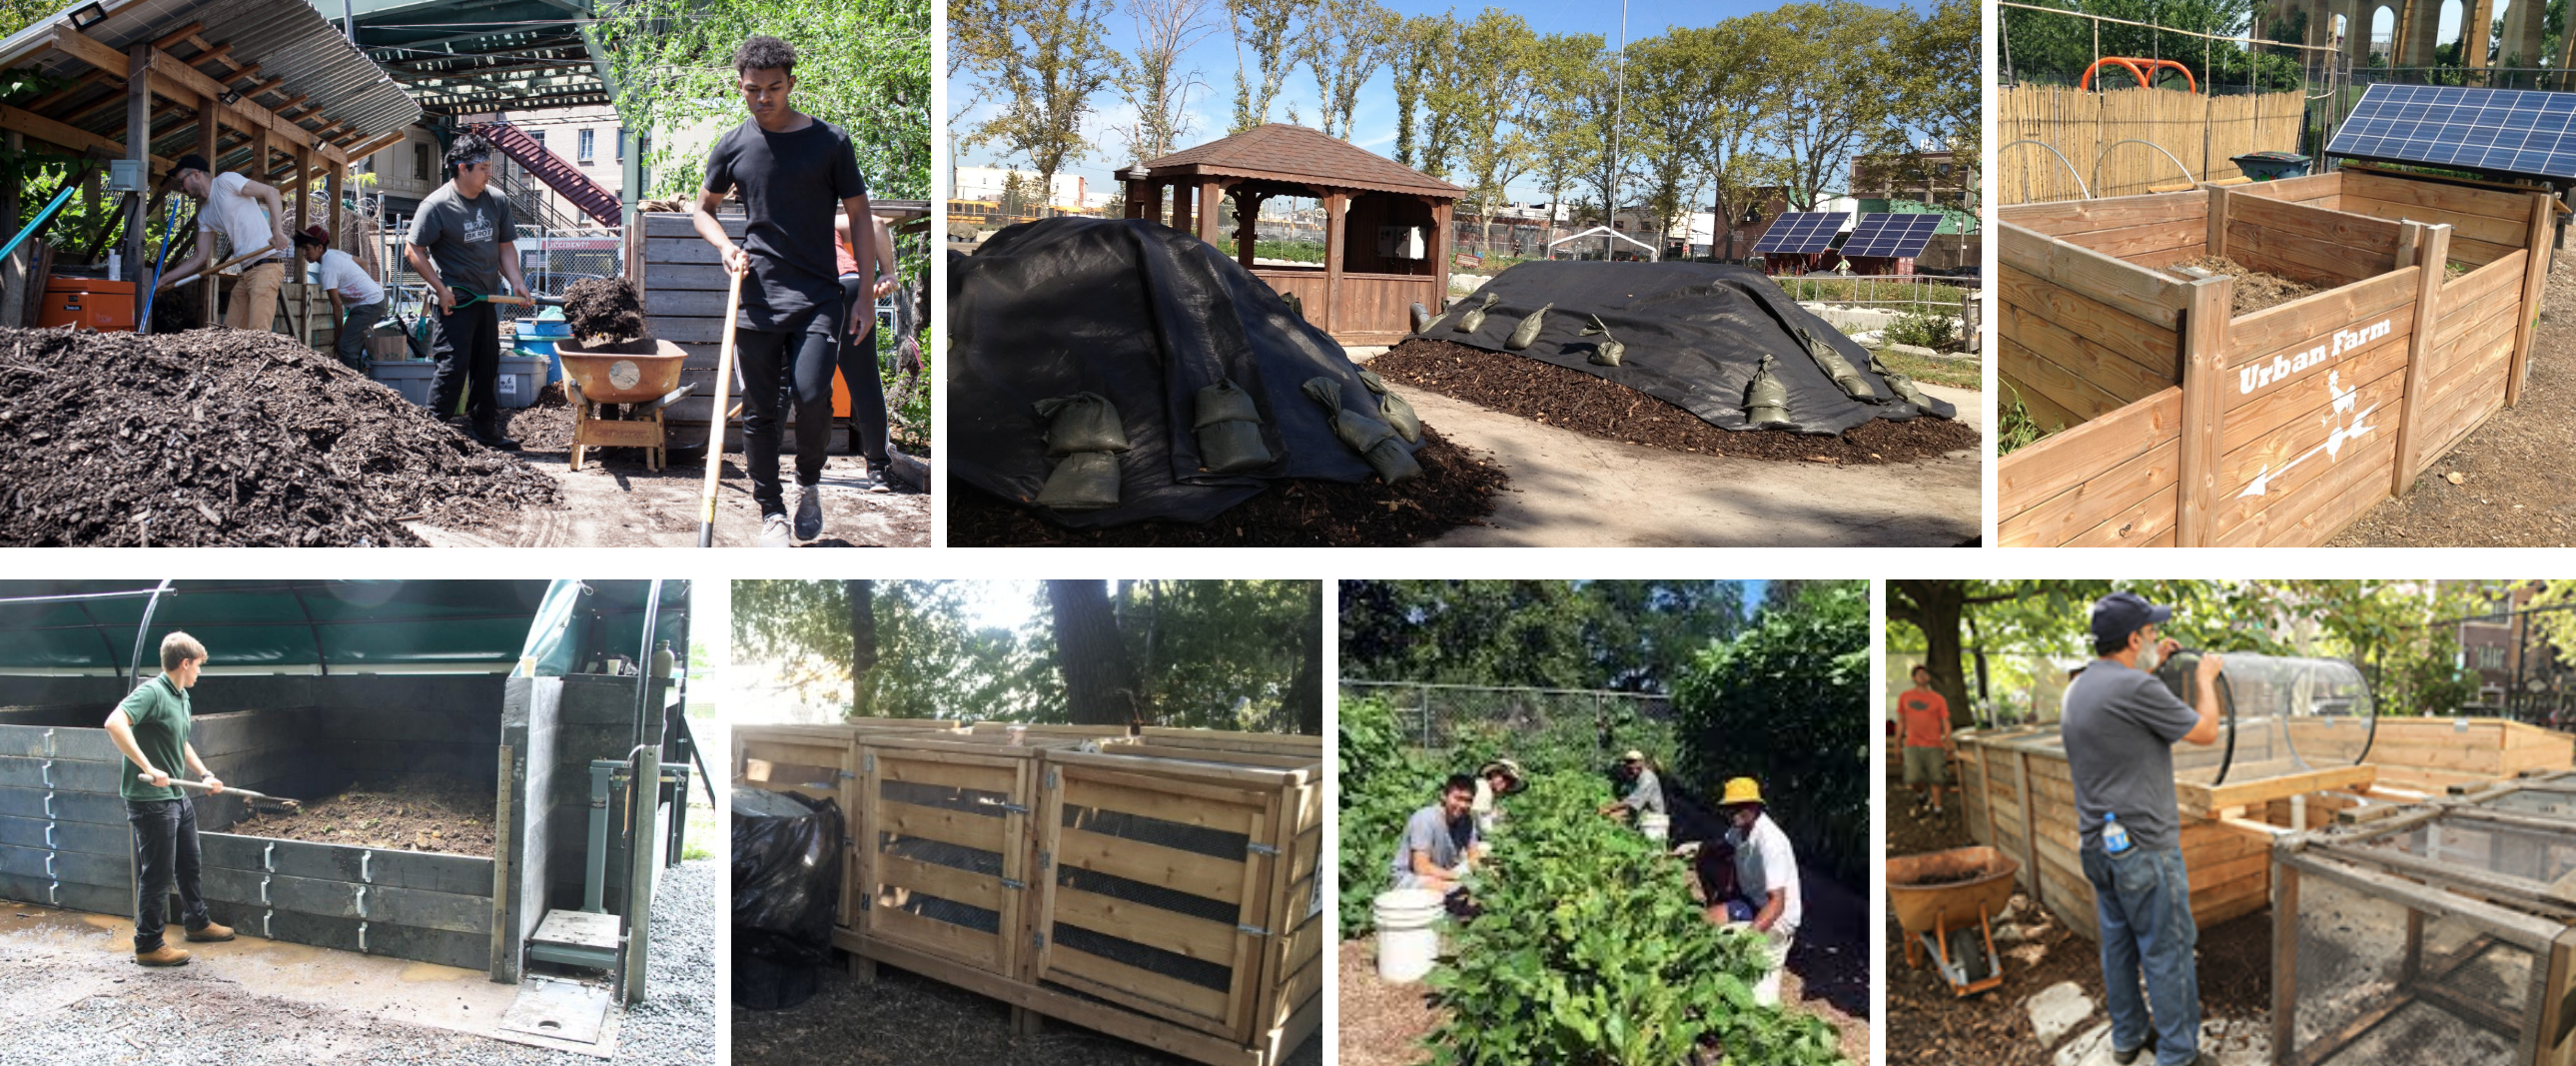 Registration Now Open for Tours of NYC Composting Sites - Institute